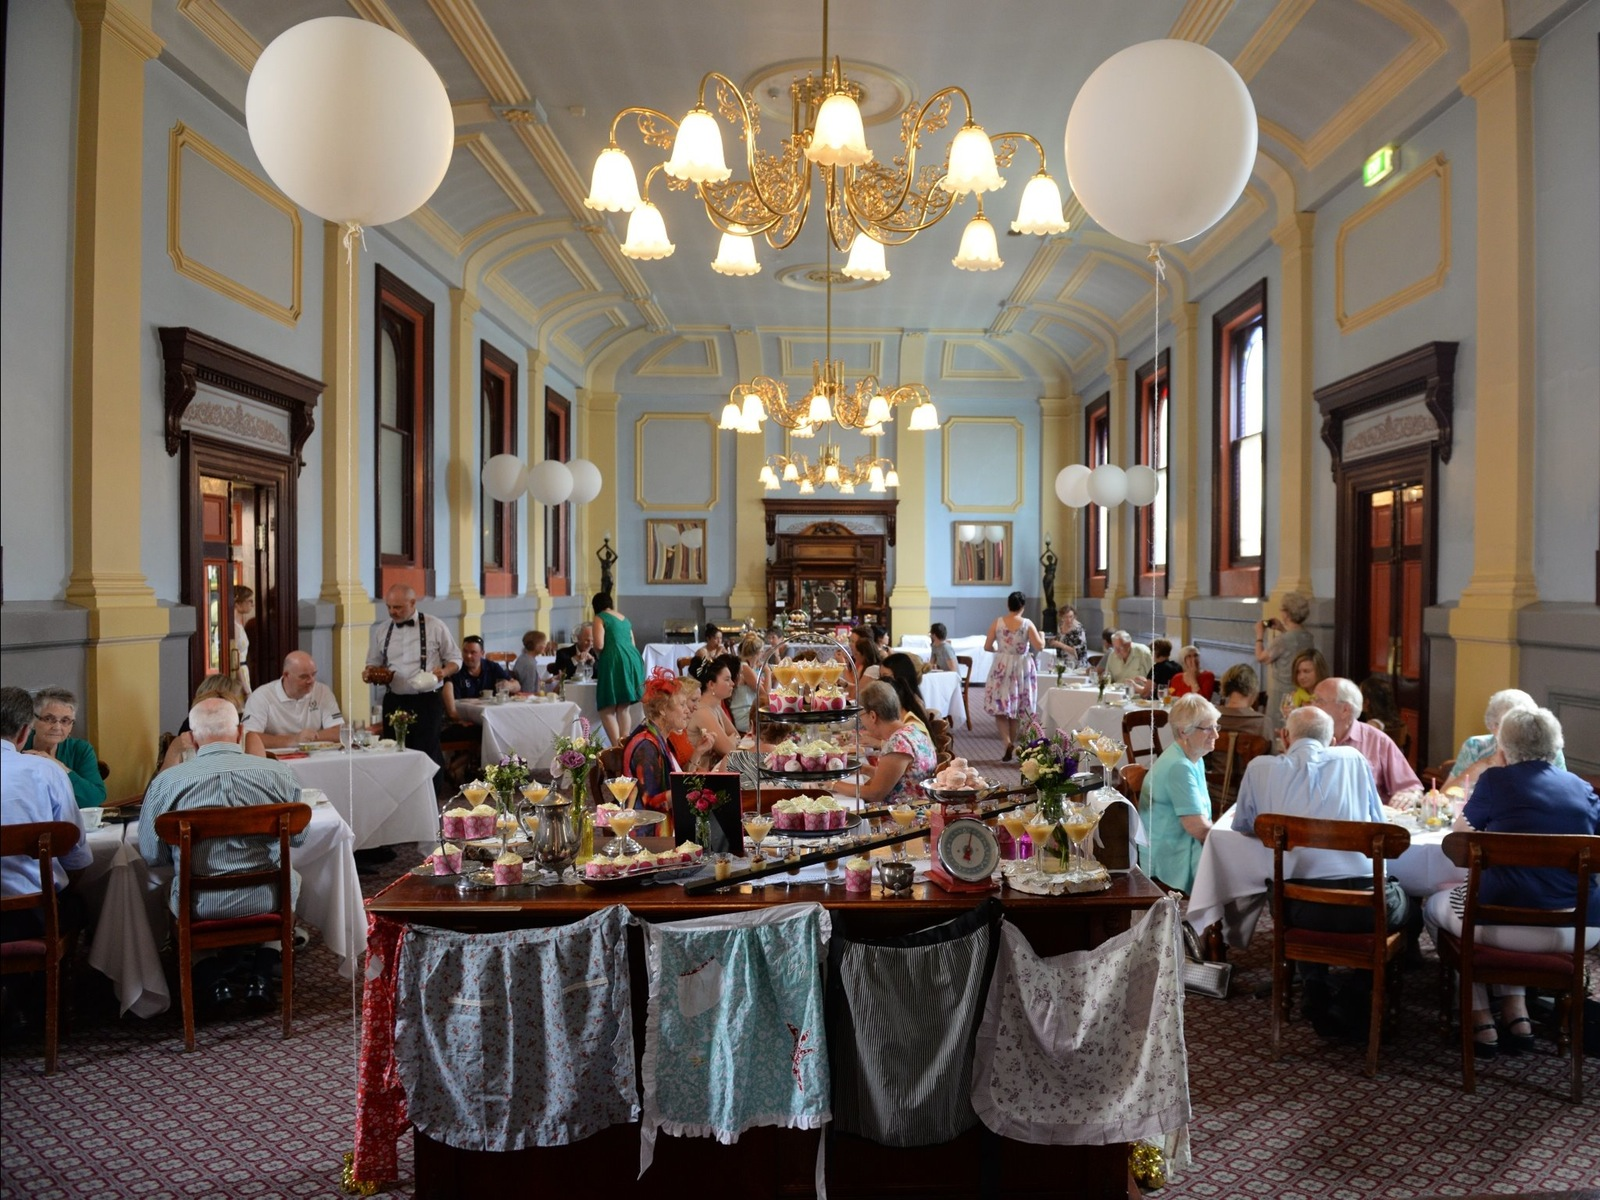 Afternoon Tea in the Grand Dining Room